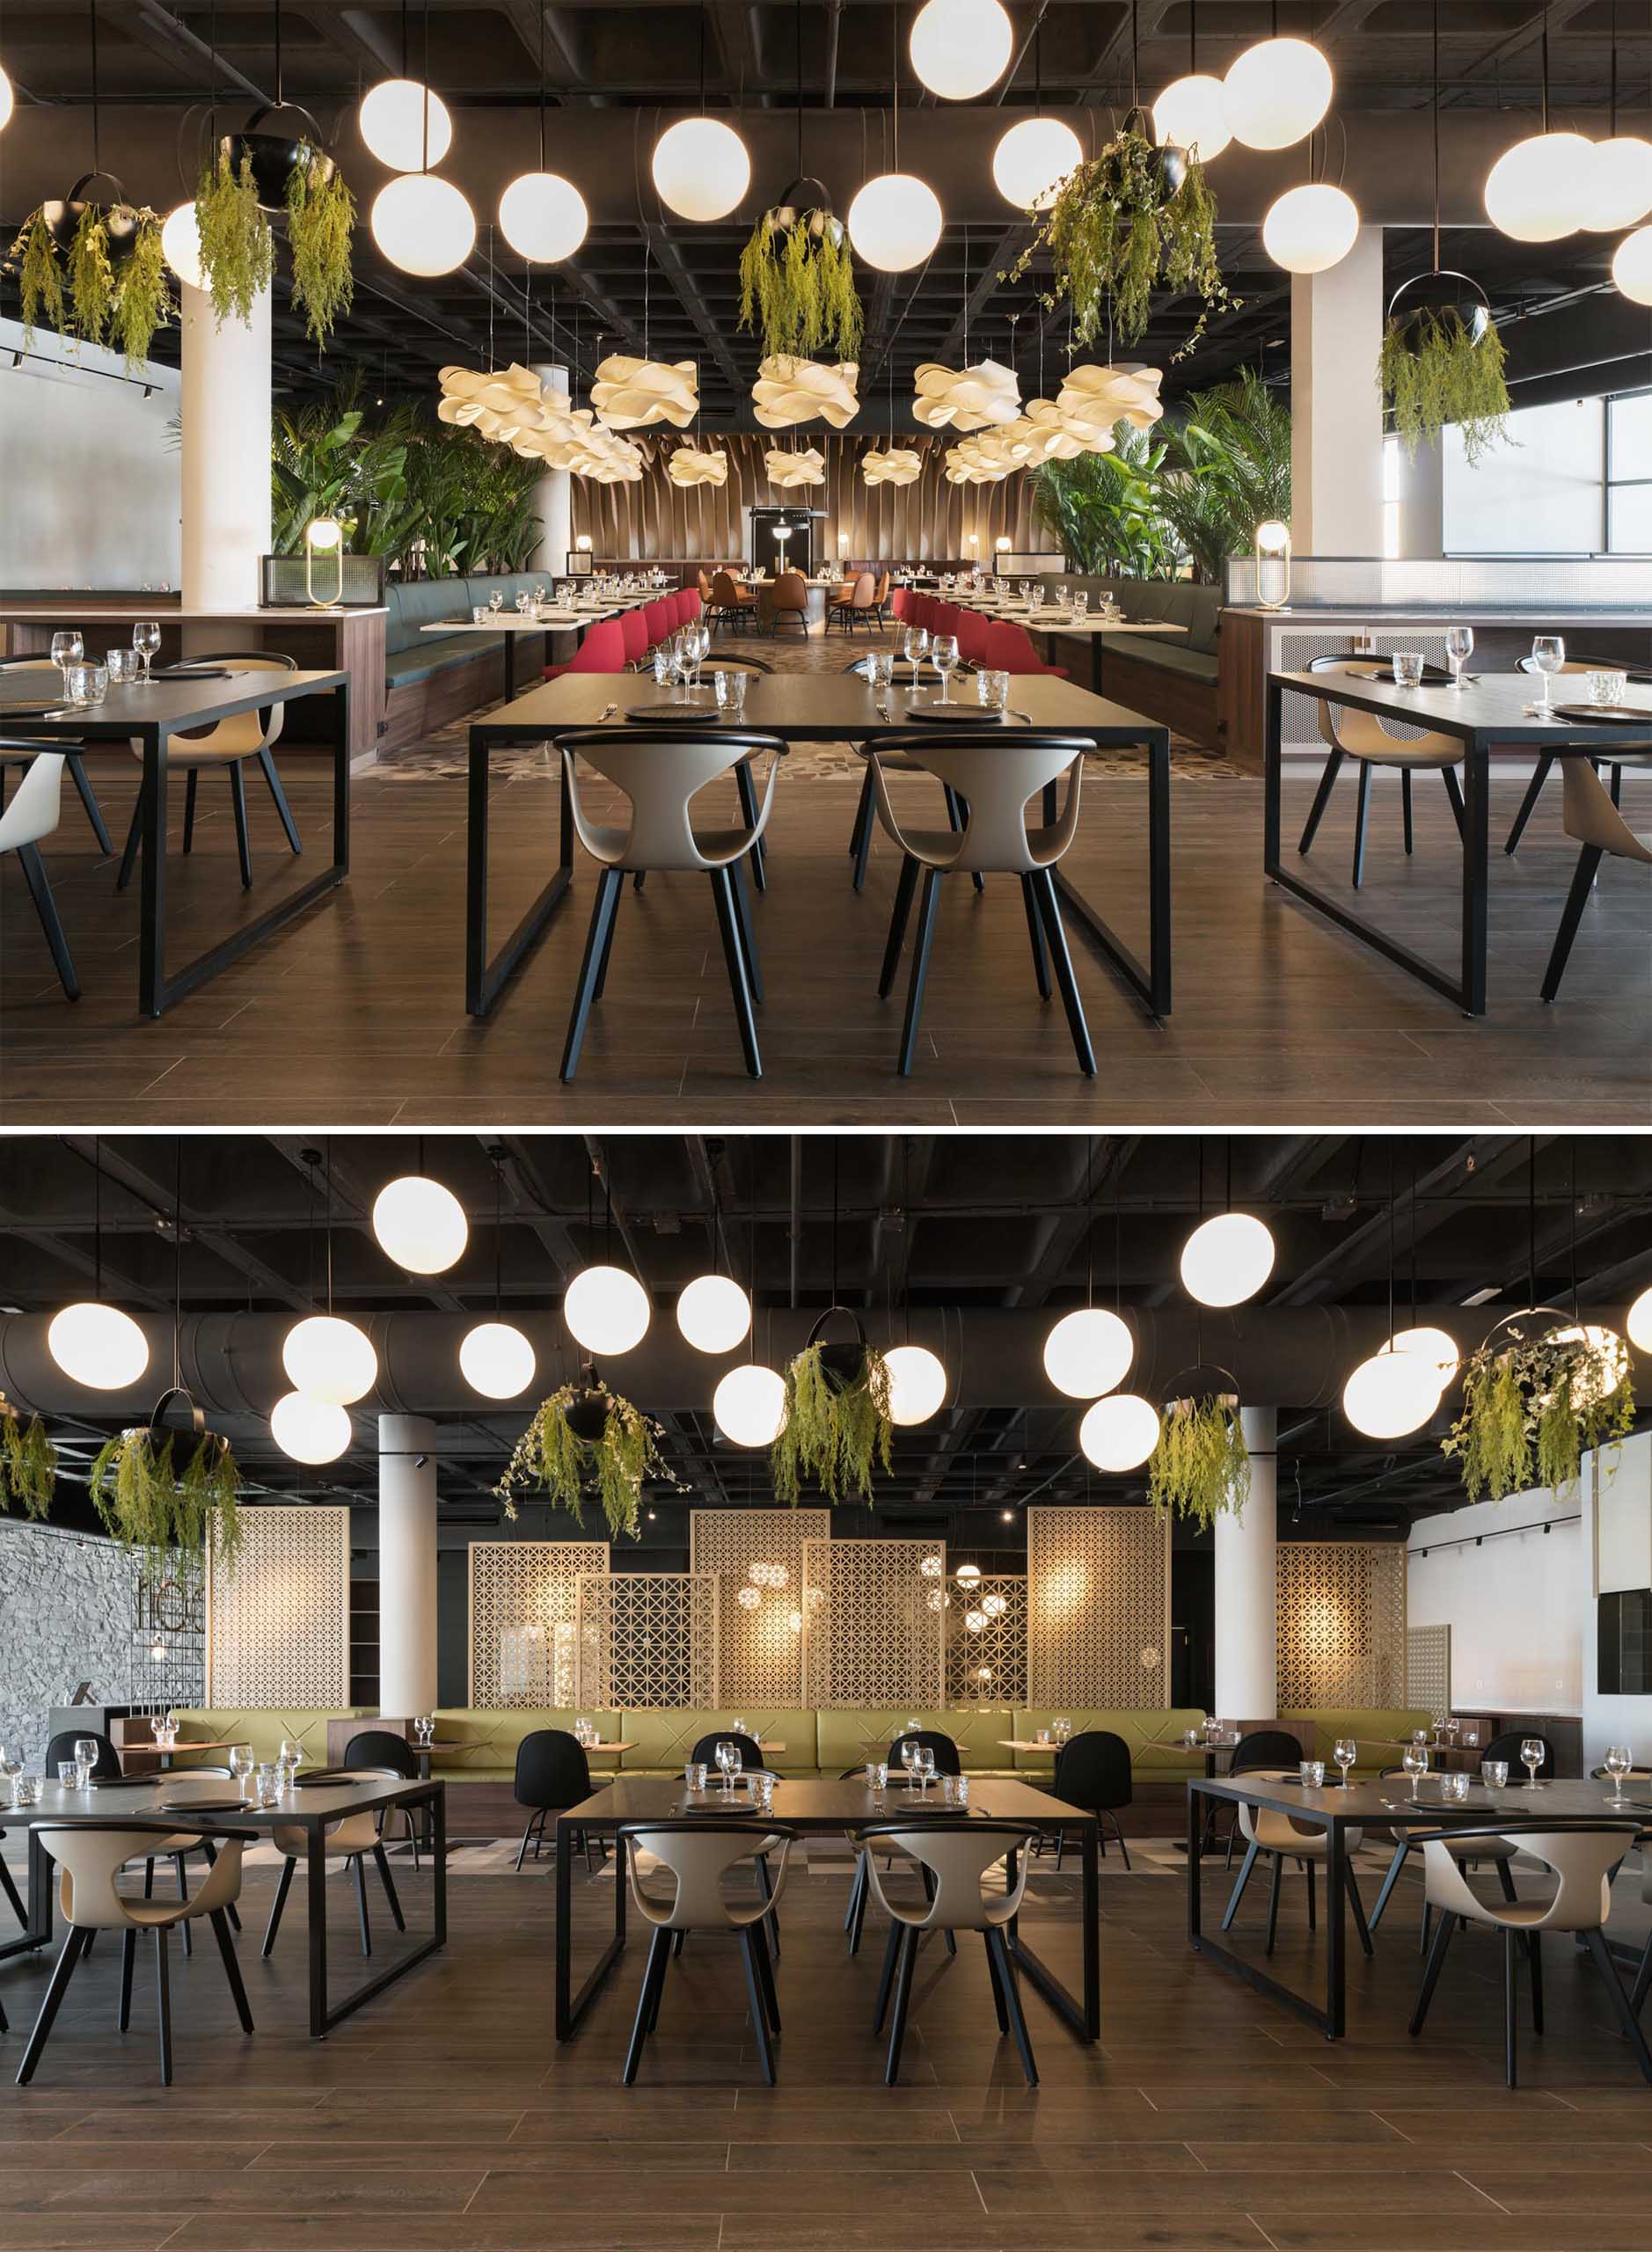 A modern restaurant with greenery, multiple seating areas, and plenty of lighting.